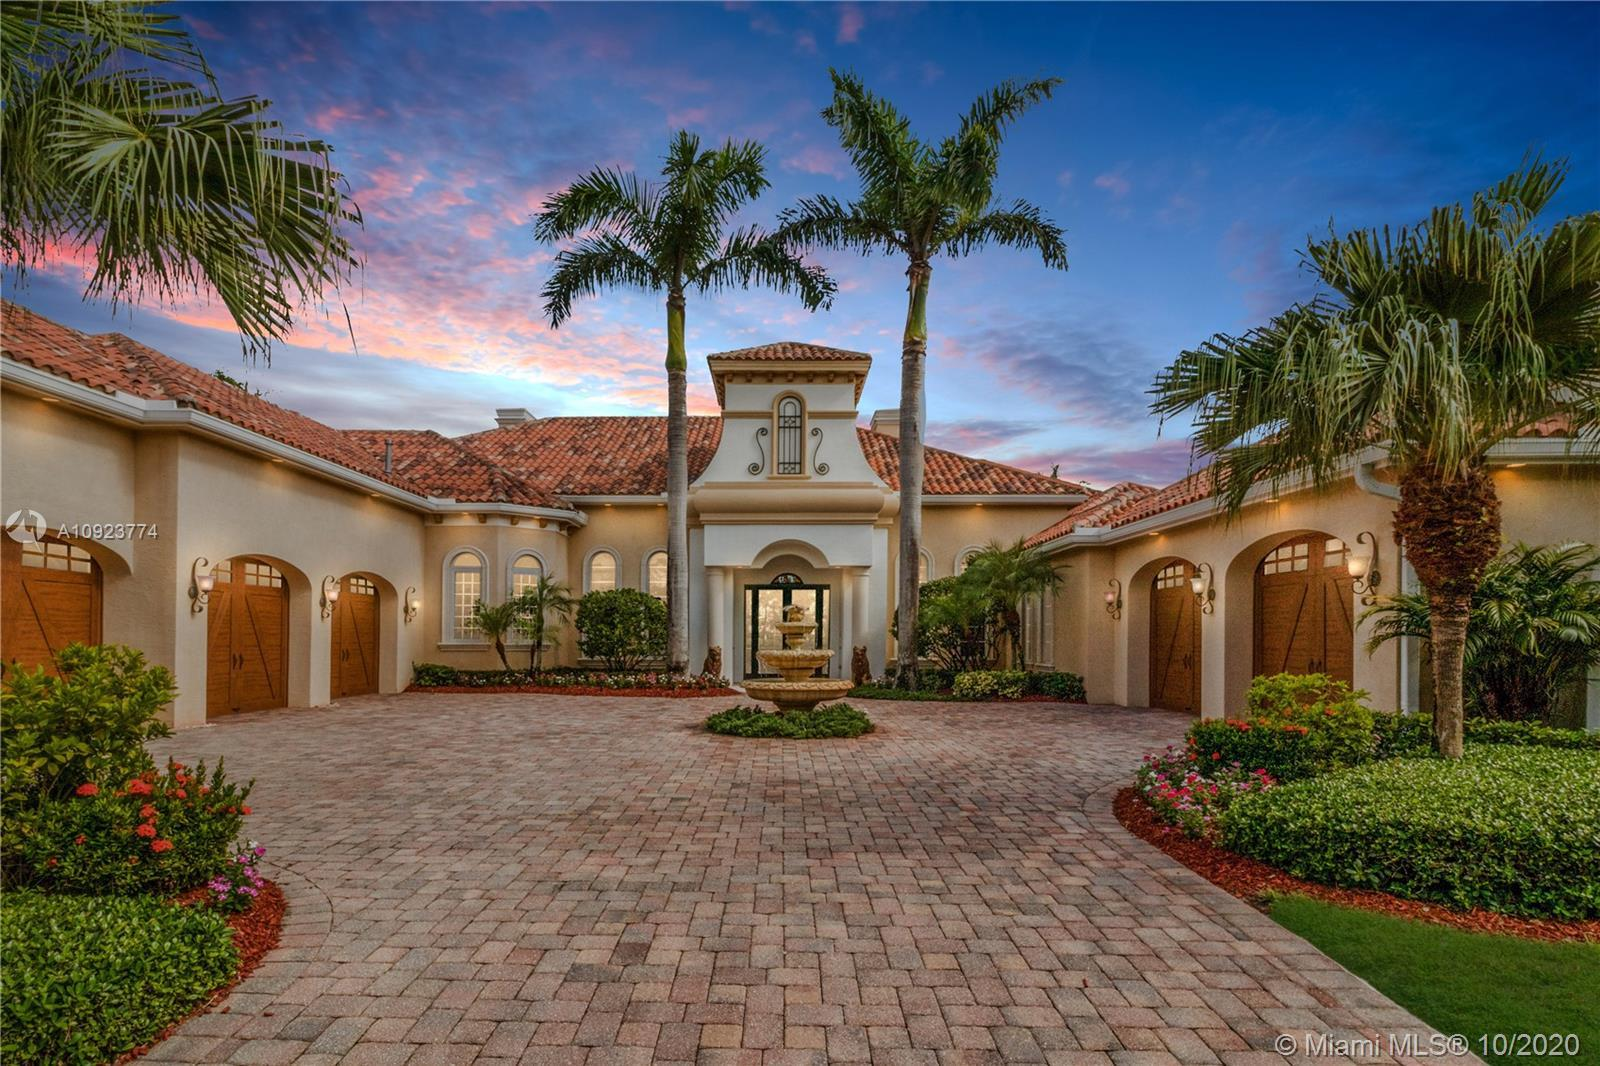 La Bahama Hacienda, one of 12 custom-built estates, is tucked away on The Island at Boca West, a pri